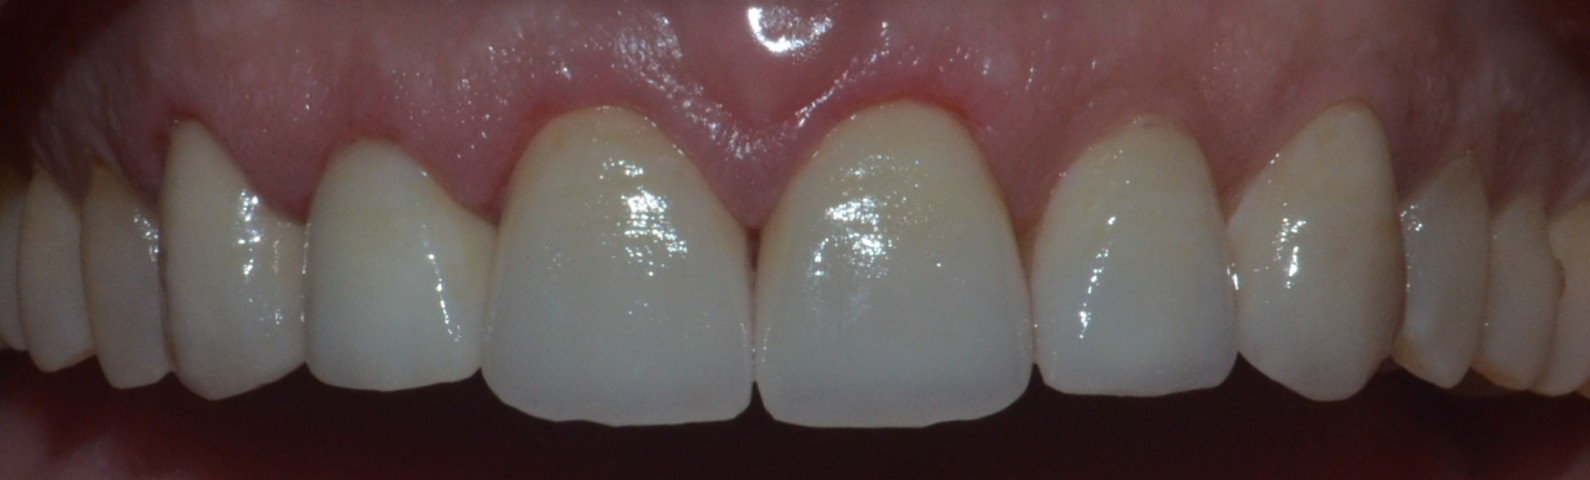 upper teeth emax crowns & veneers